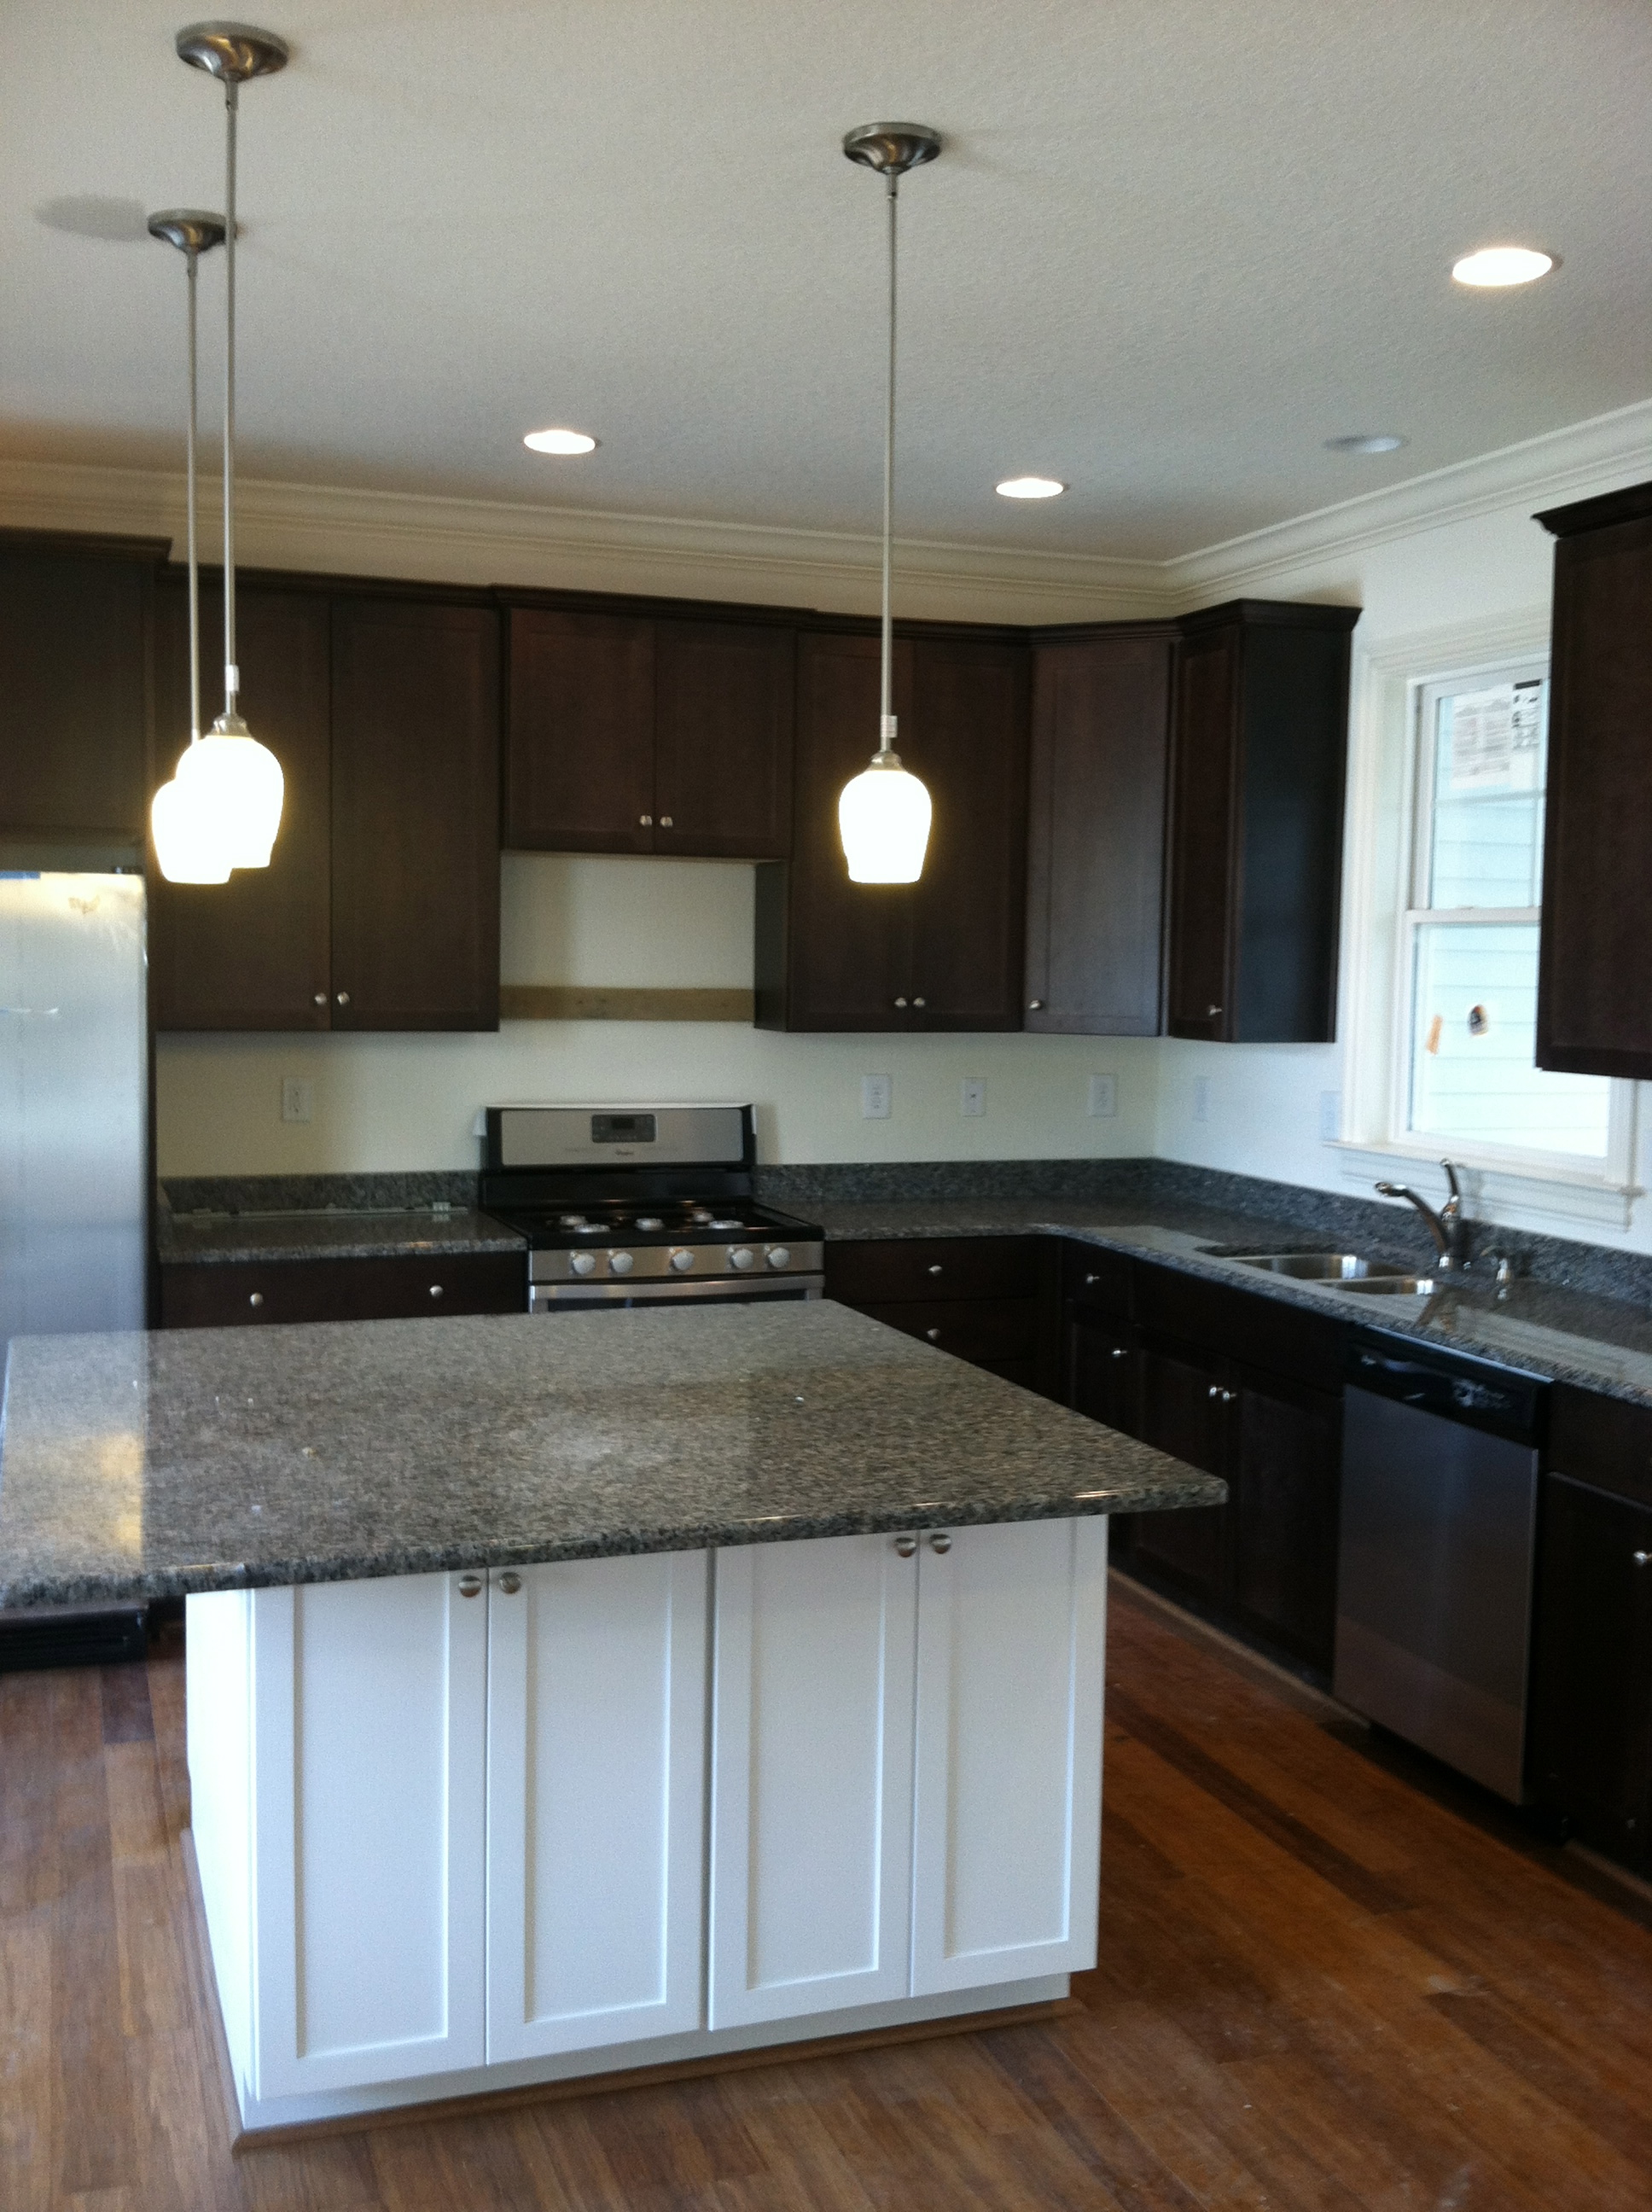 Dark Cabinets with Painted Island.